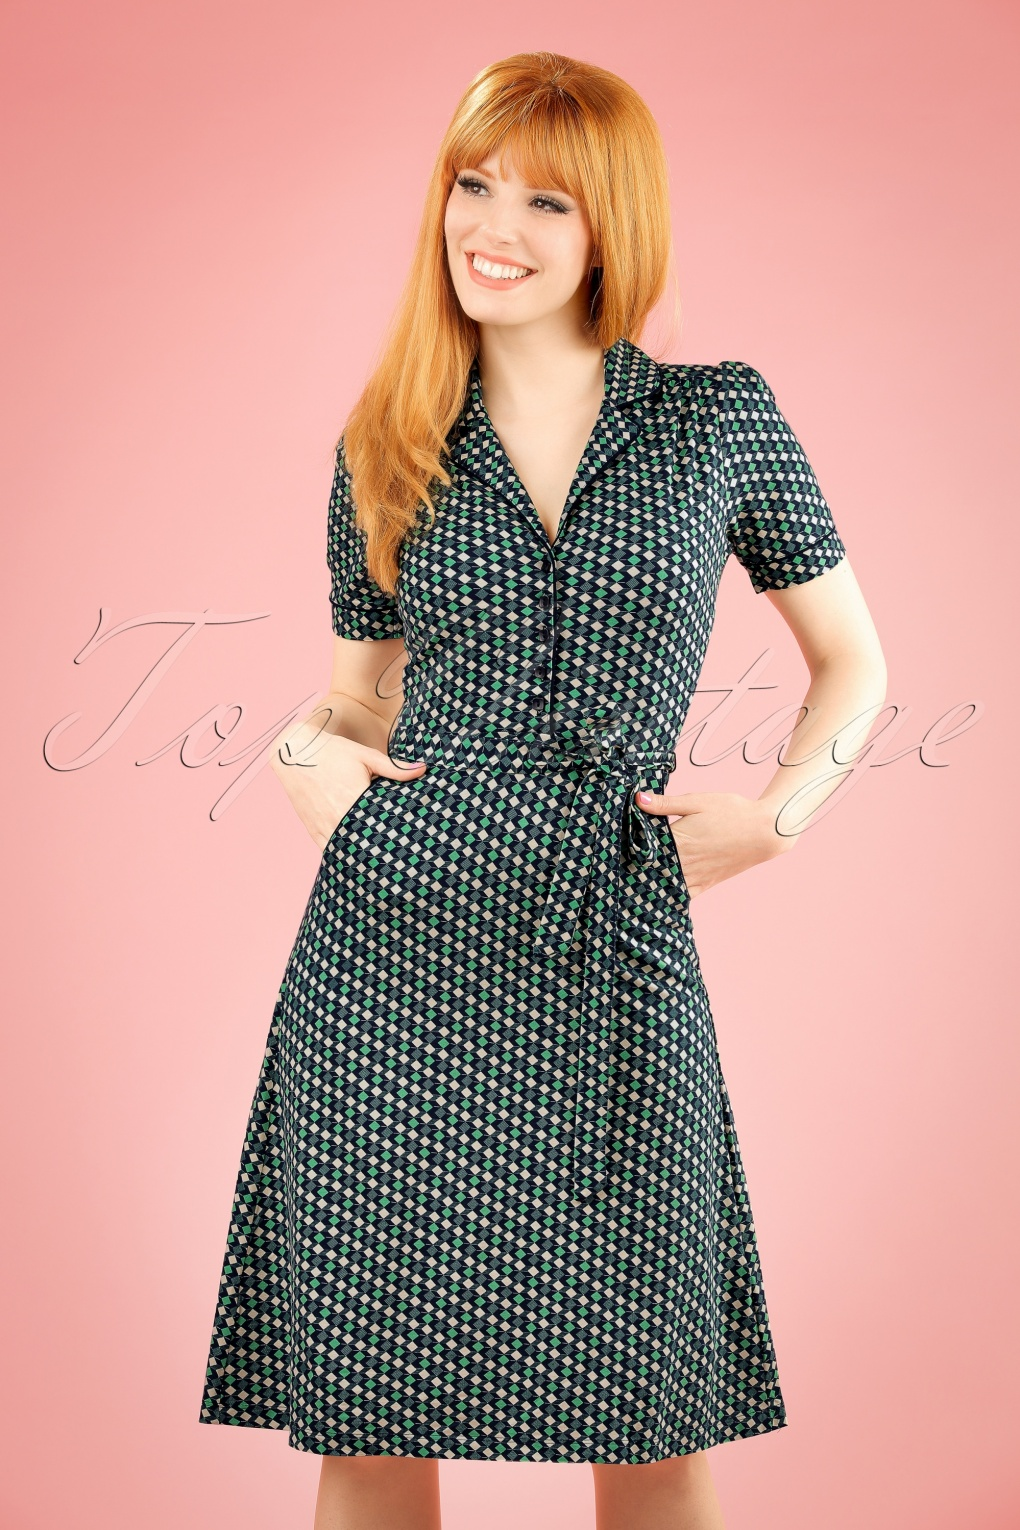 1960s Style Dresses- Retro Inspired Fashion 60s Bibi Cubici Dress in Navy and Green £69.98 AT vintagedancer.com